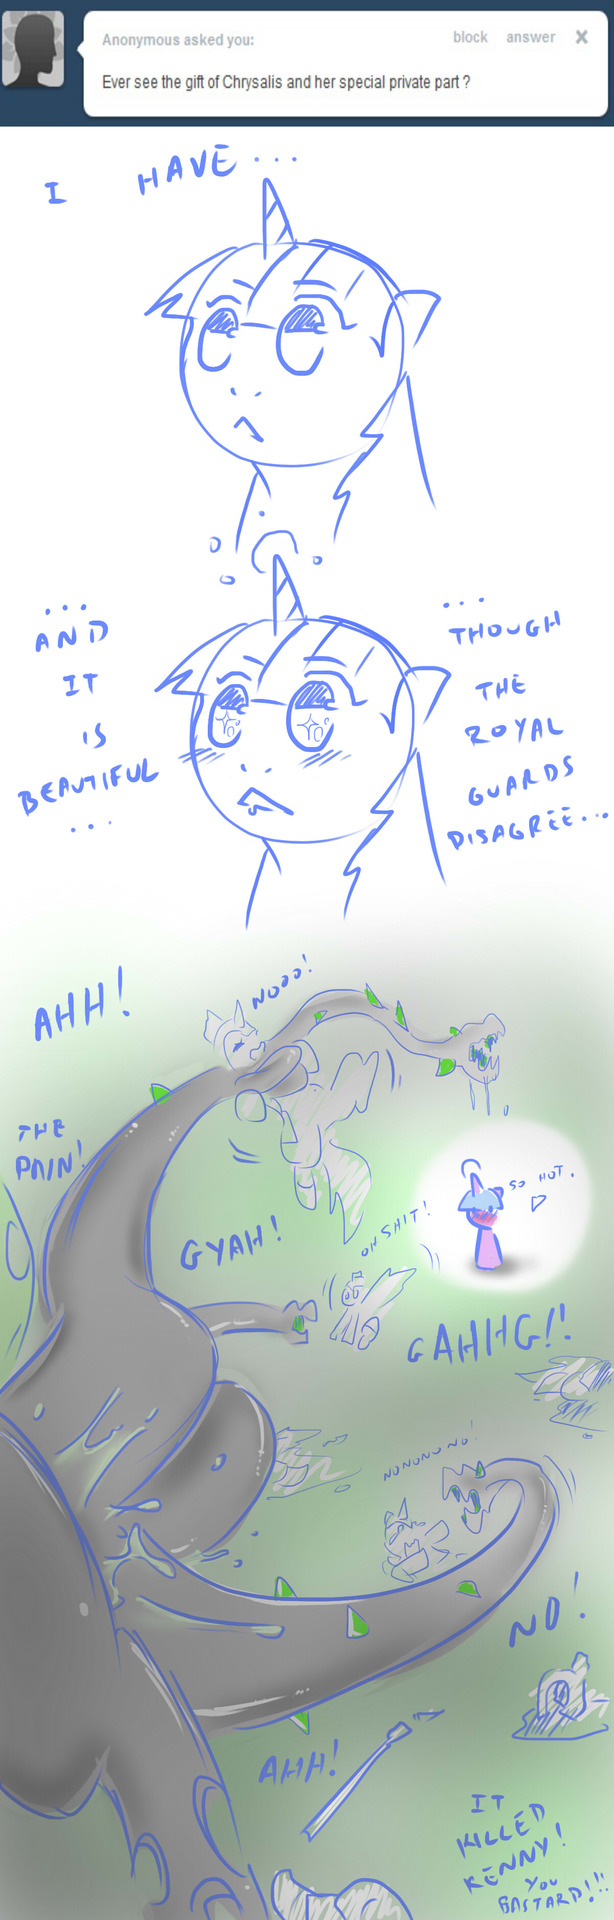 twilight x sparkle sentry flash Warframe who is the stalker